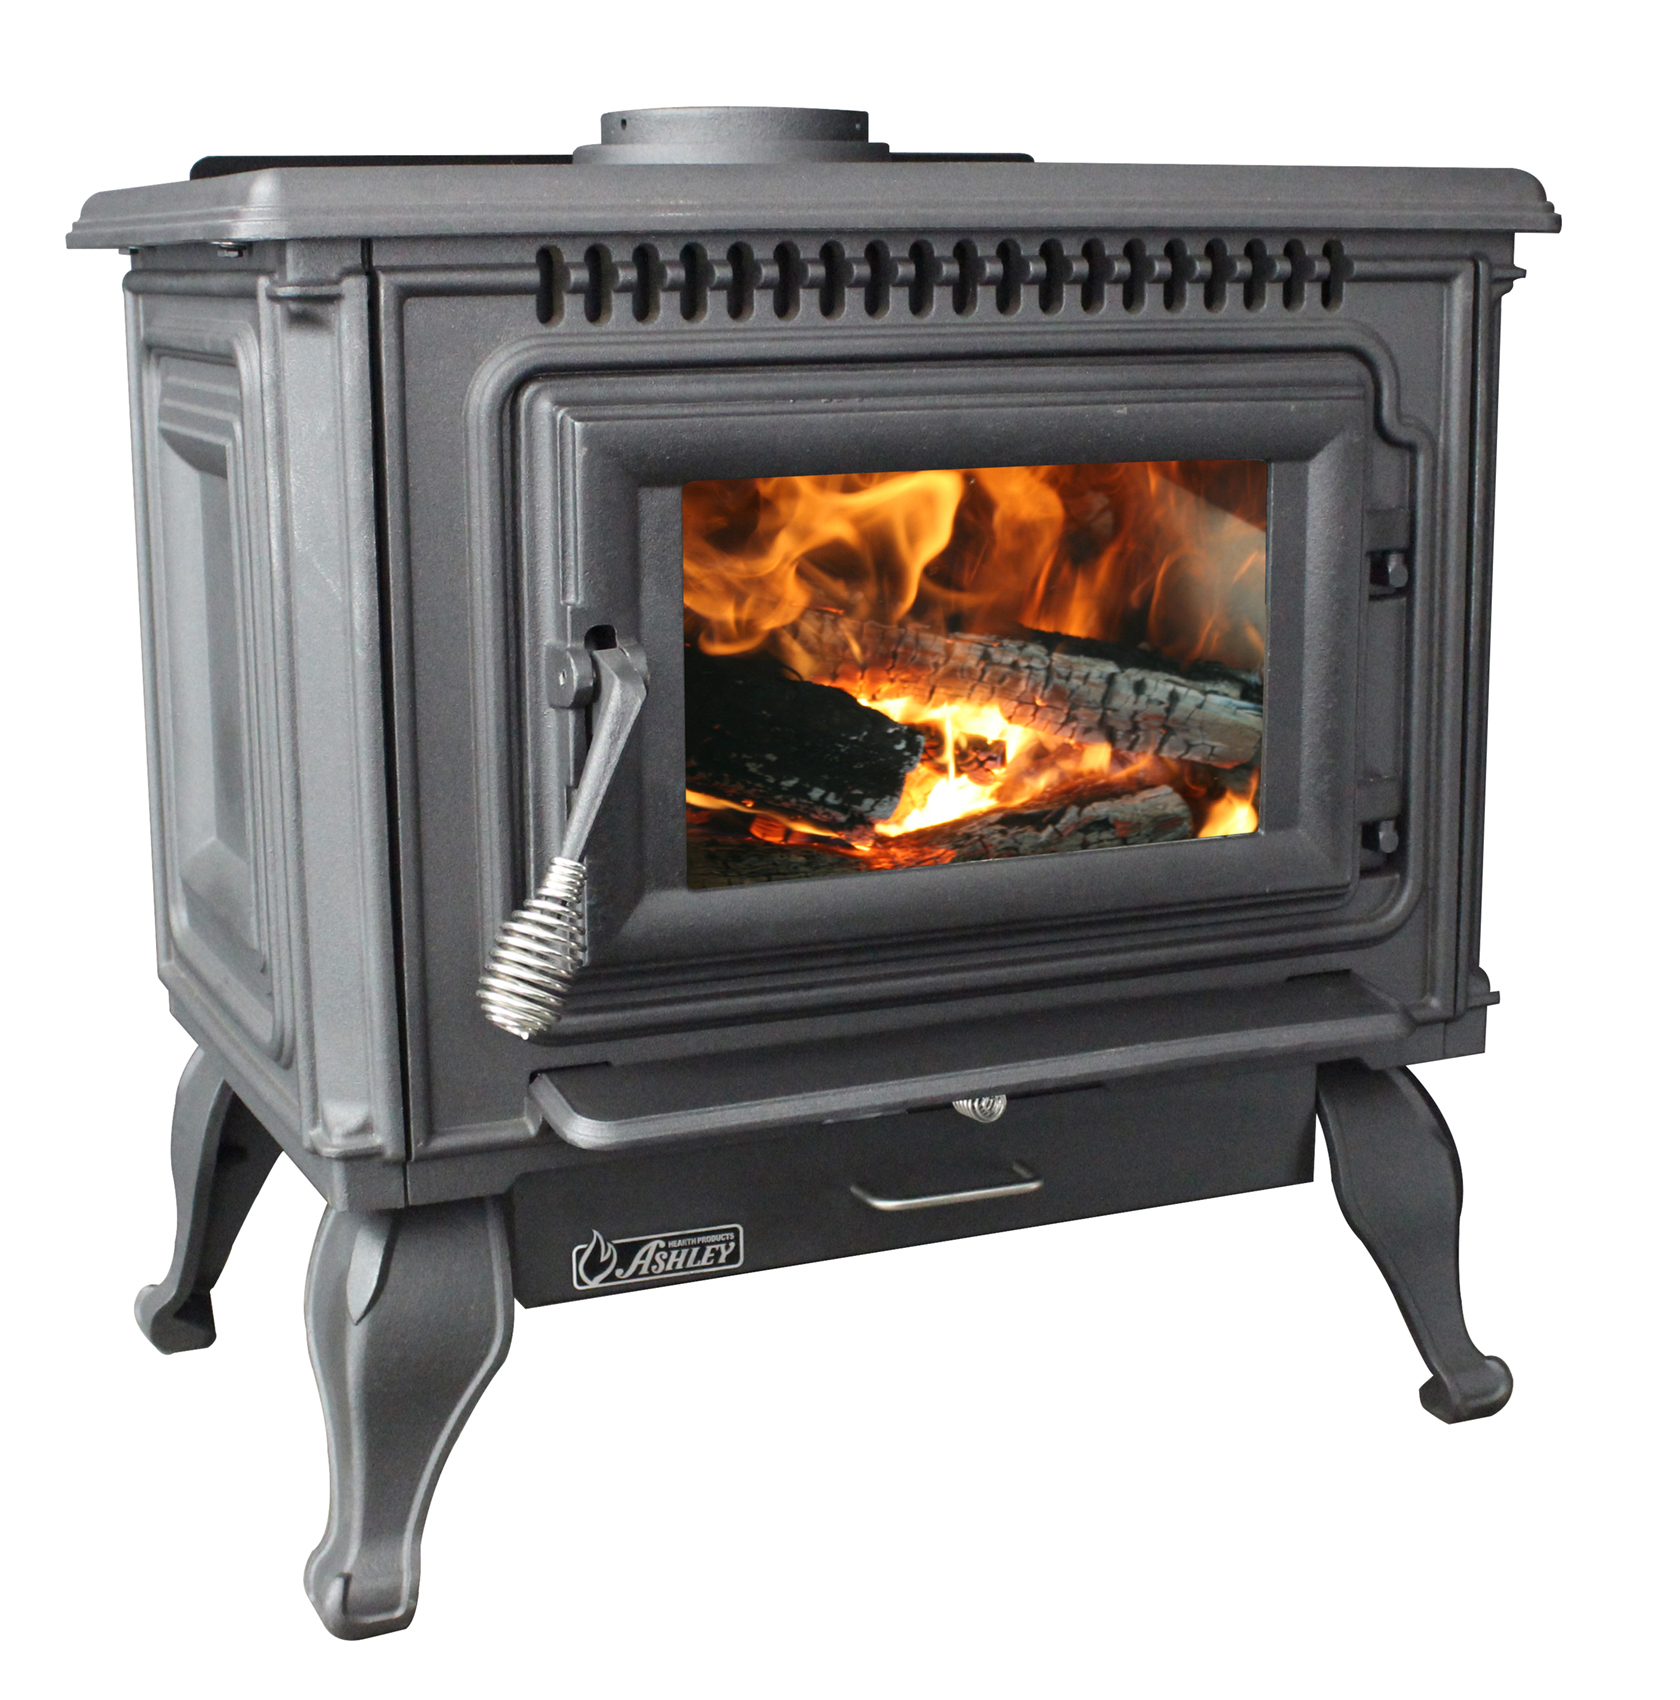 Ashley 2,000 Sq. Ft. EPA Certified Cast Iron Wood stove with Blower